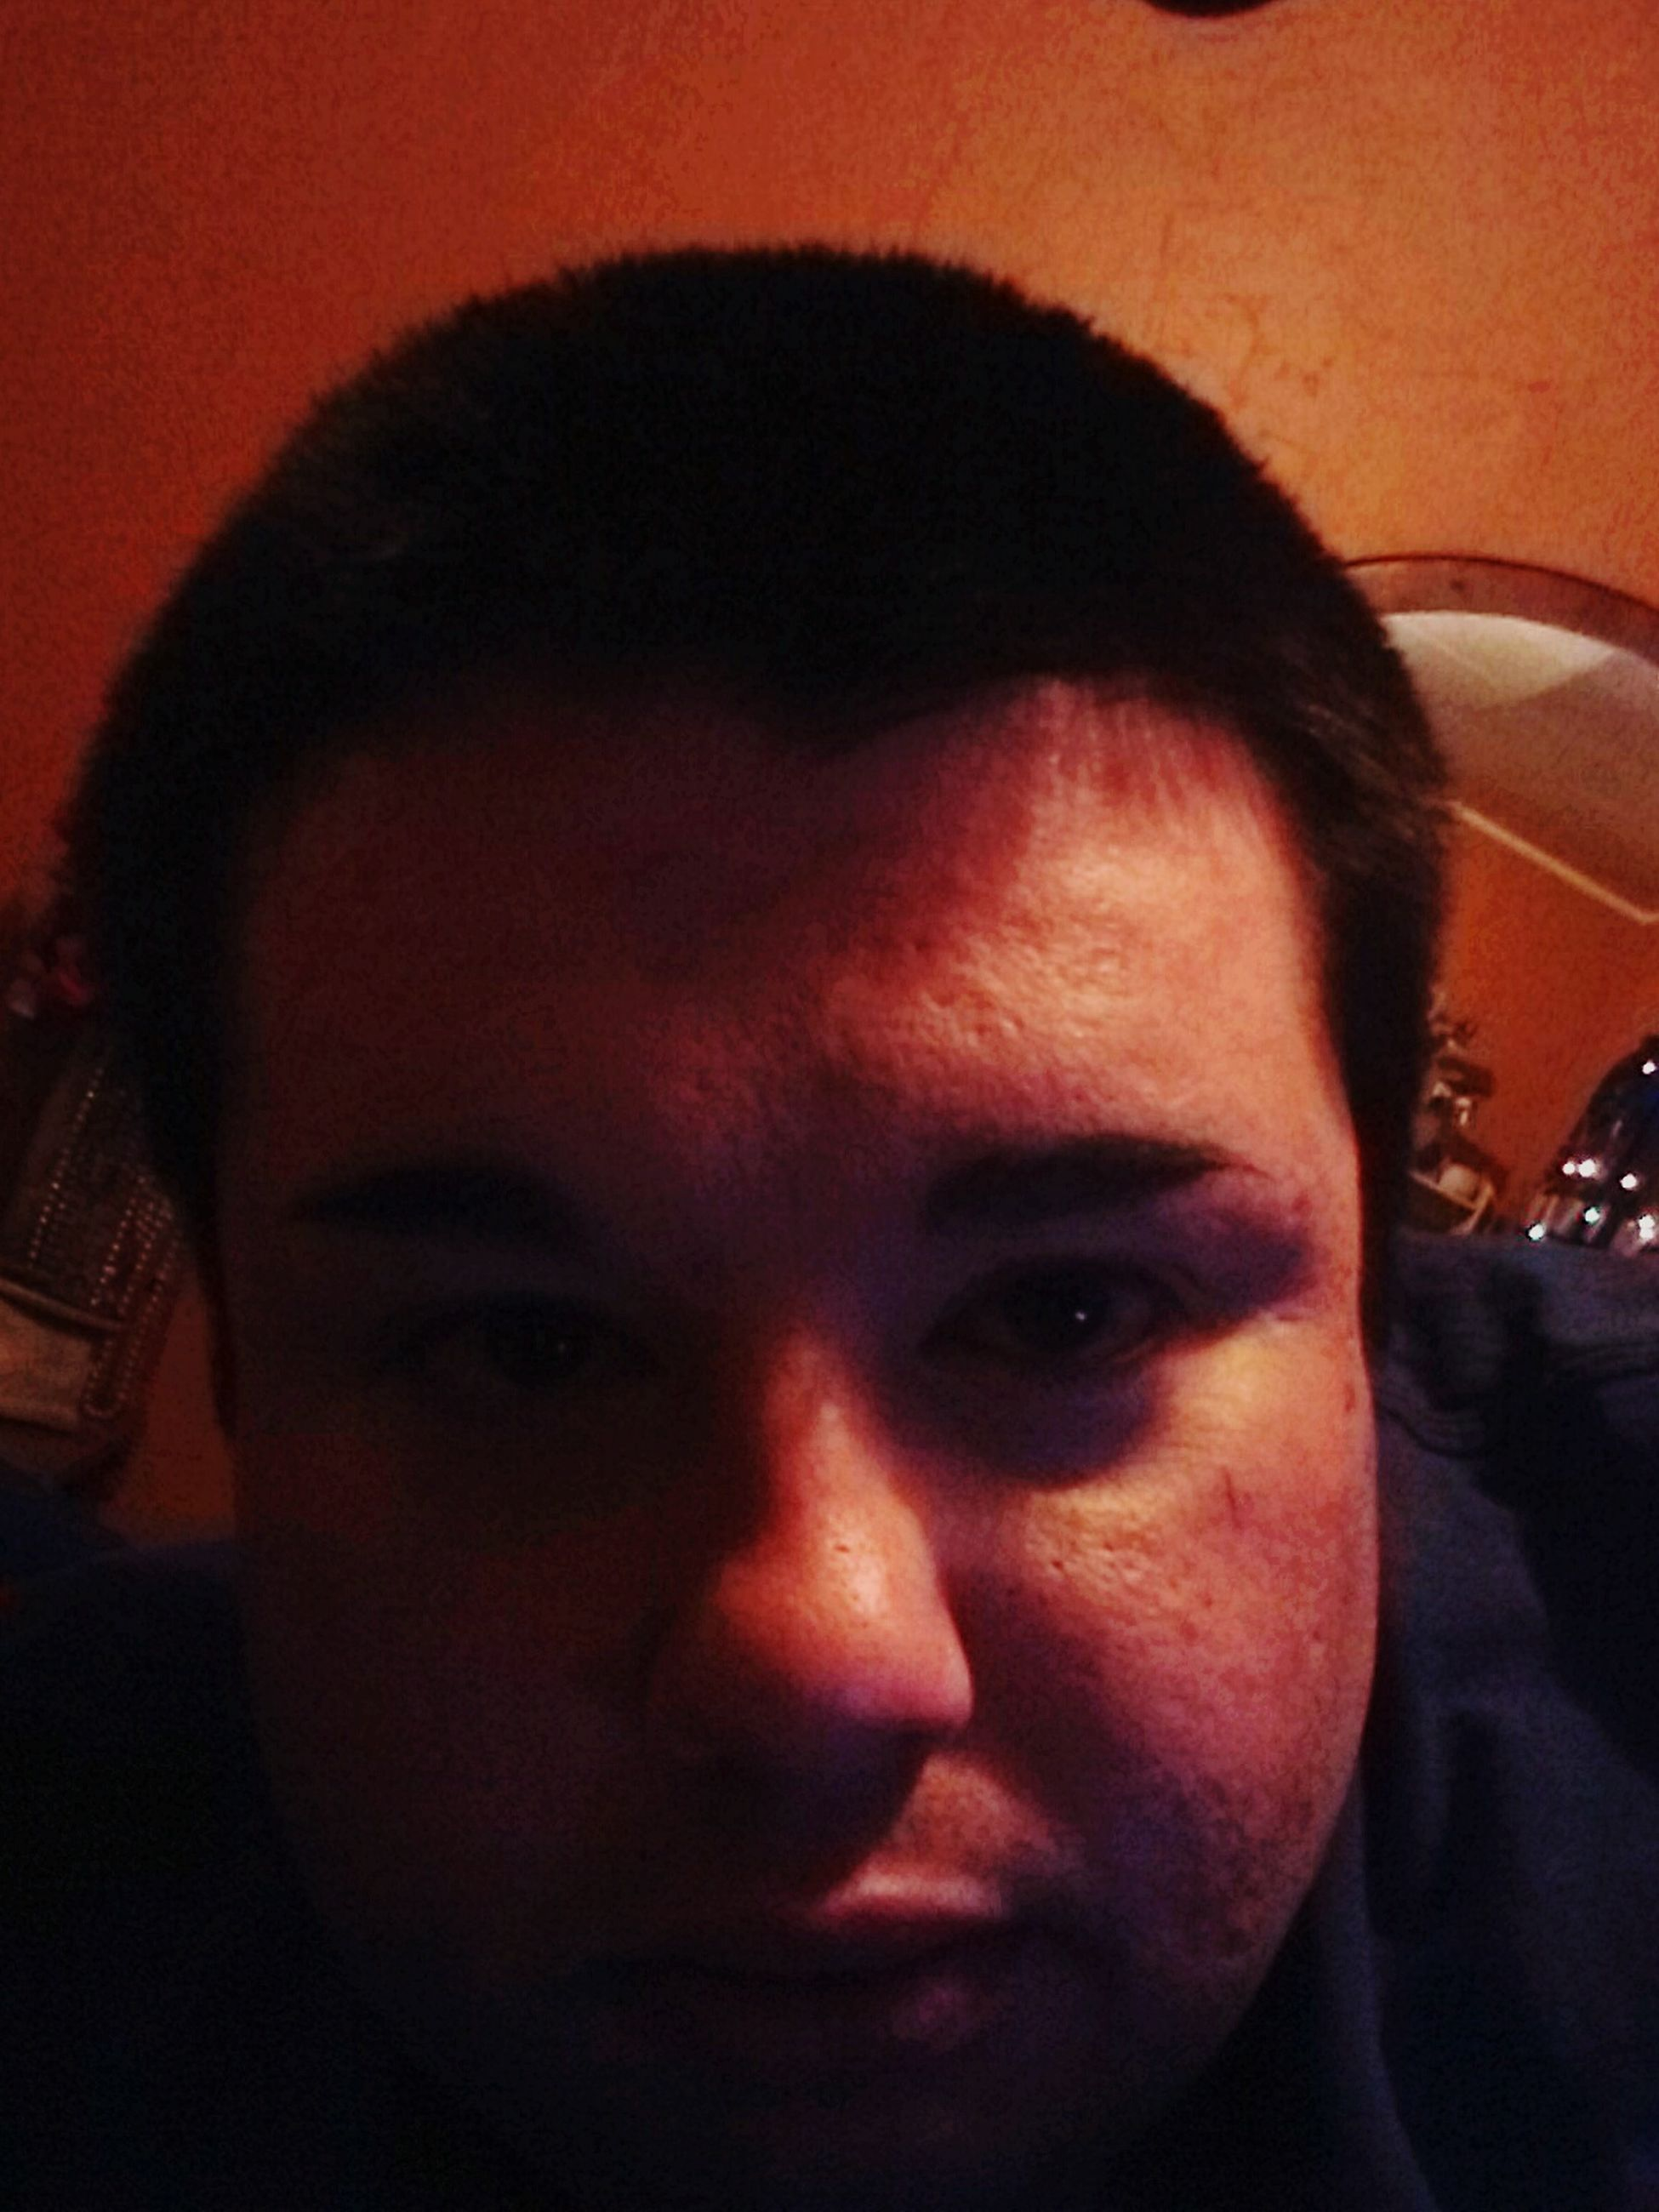 headshot, looking at camera, portrait, person, young adult, lifestyles, young men, indoors, close-up, mid adult, front view, mid adult men, human face, leisure activity, head and shoulders, stubble, smiling, serious